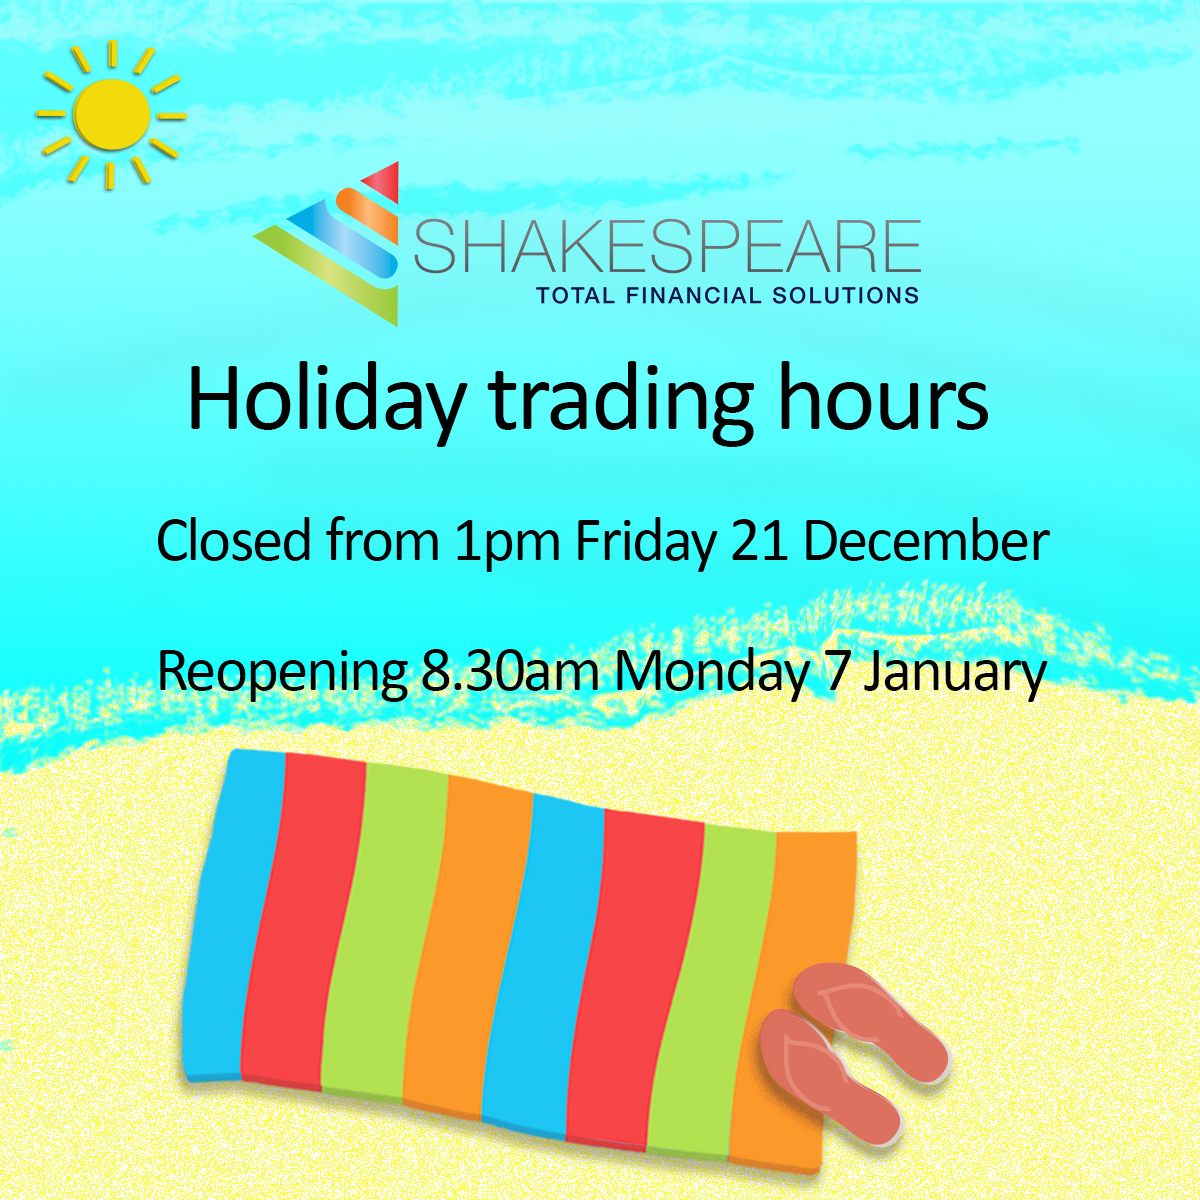 Shakespeare group holidays trading hours